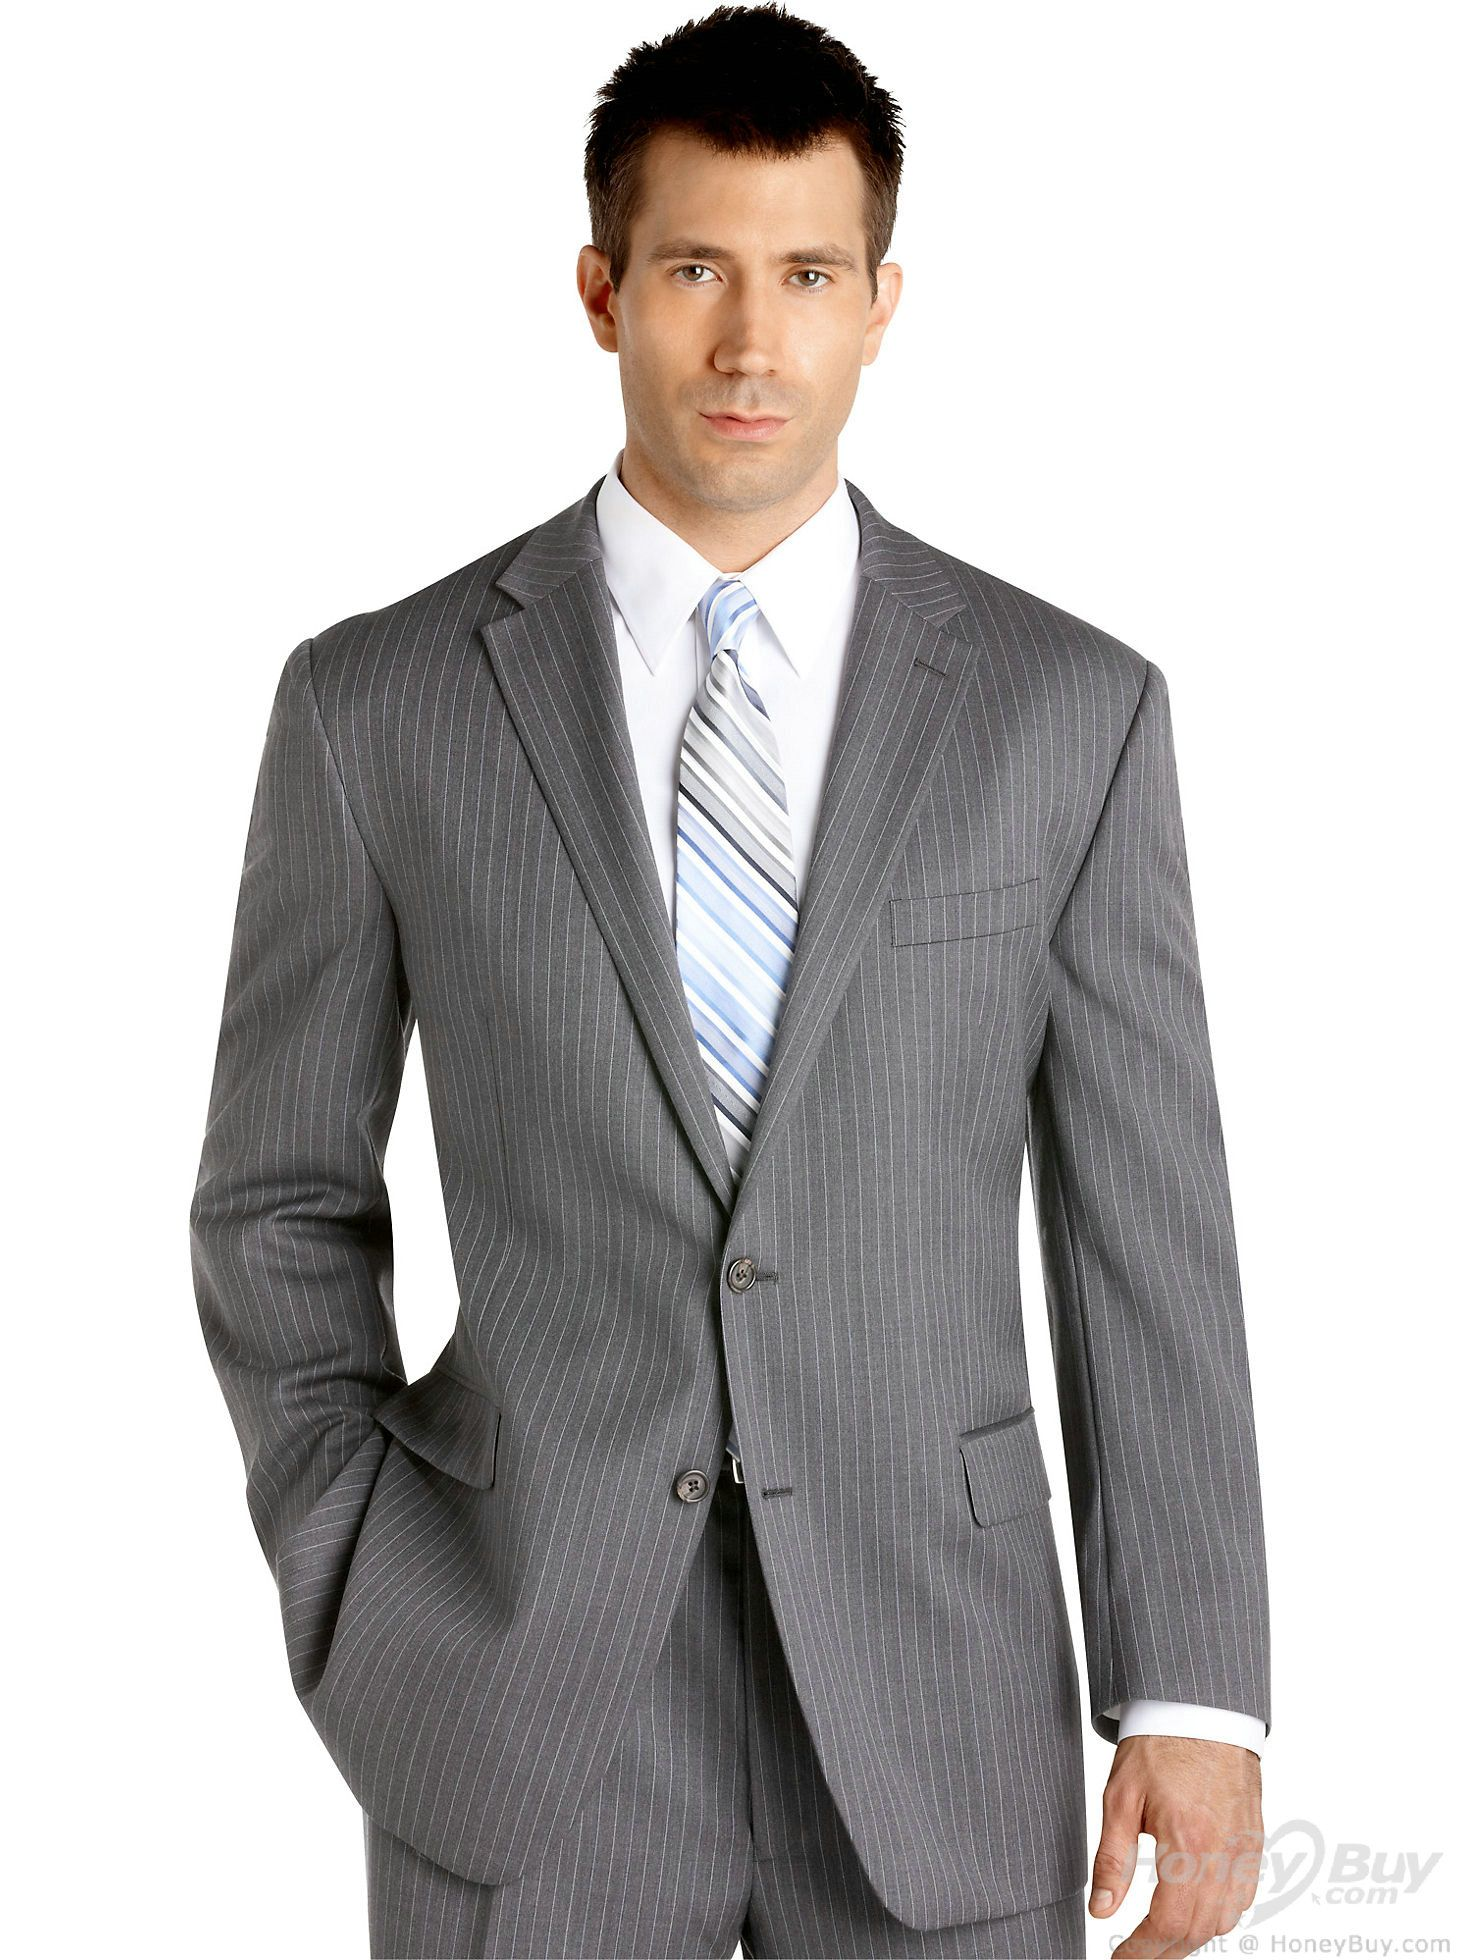 What is the dream of a suit